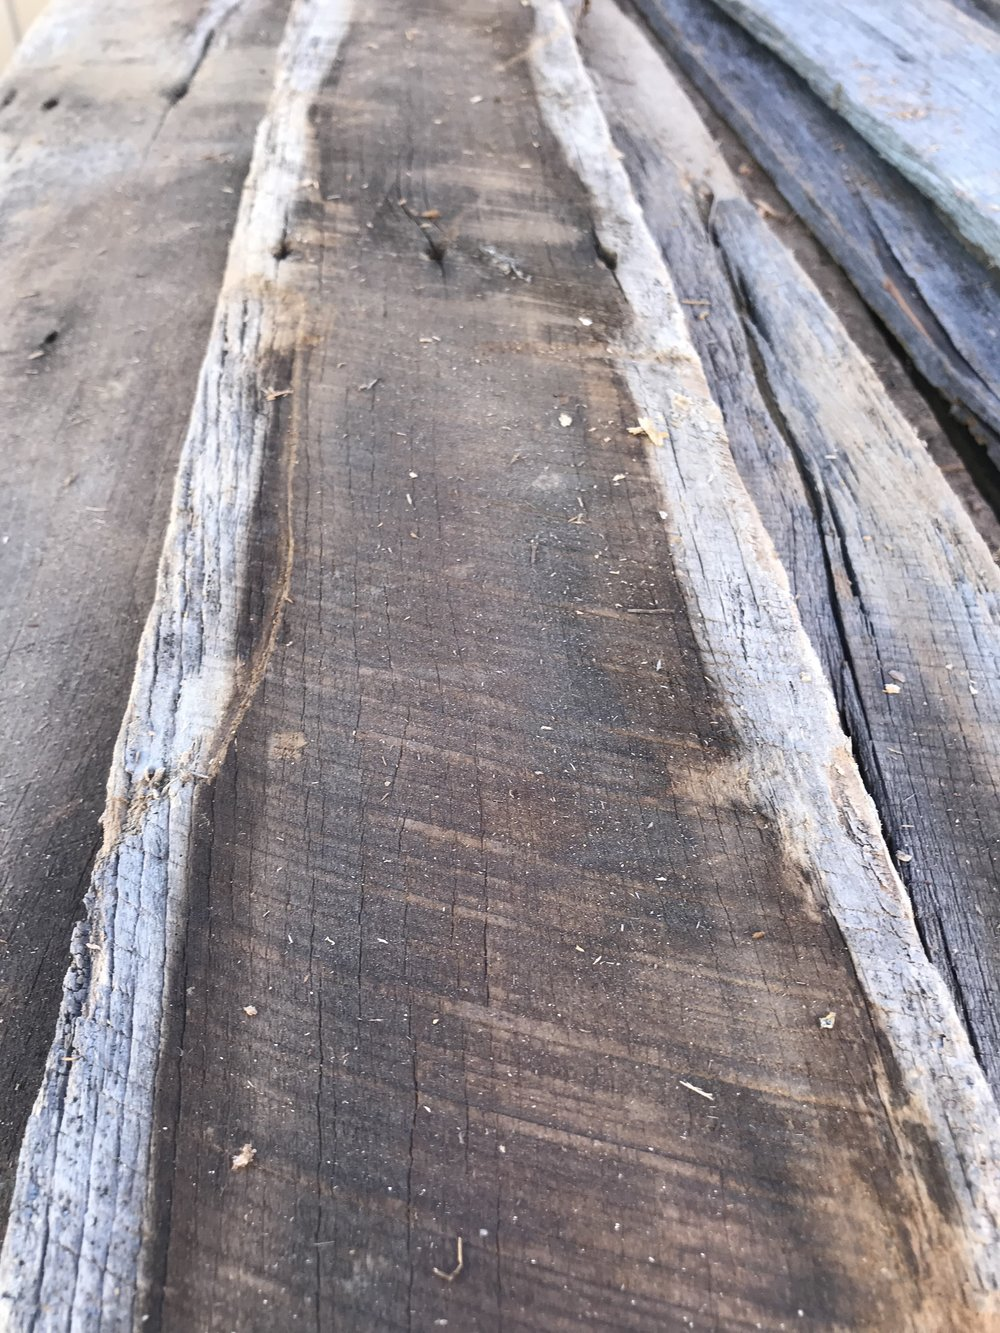 Used black and deep brown barn wood siding with natural weathering